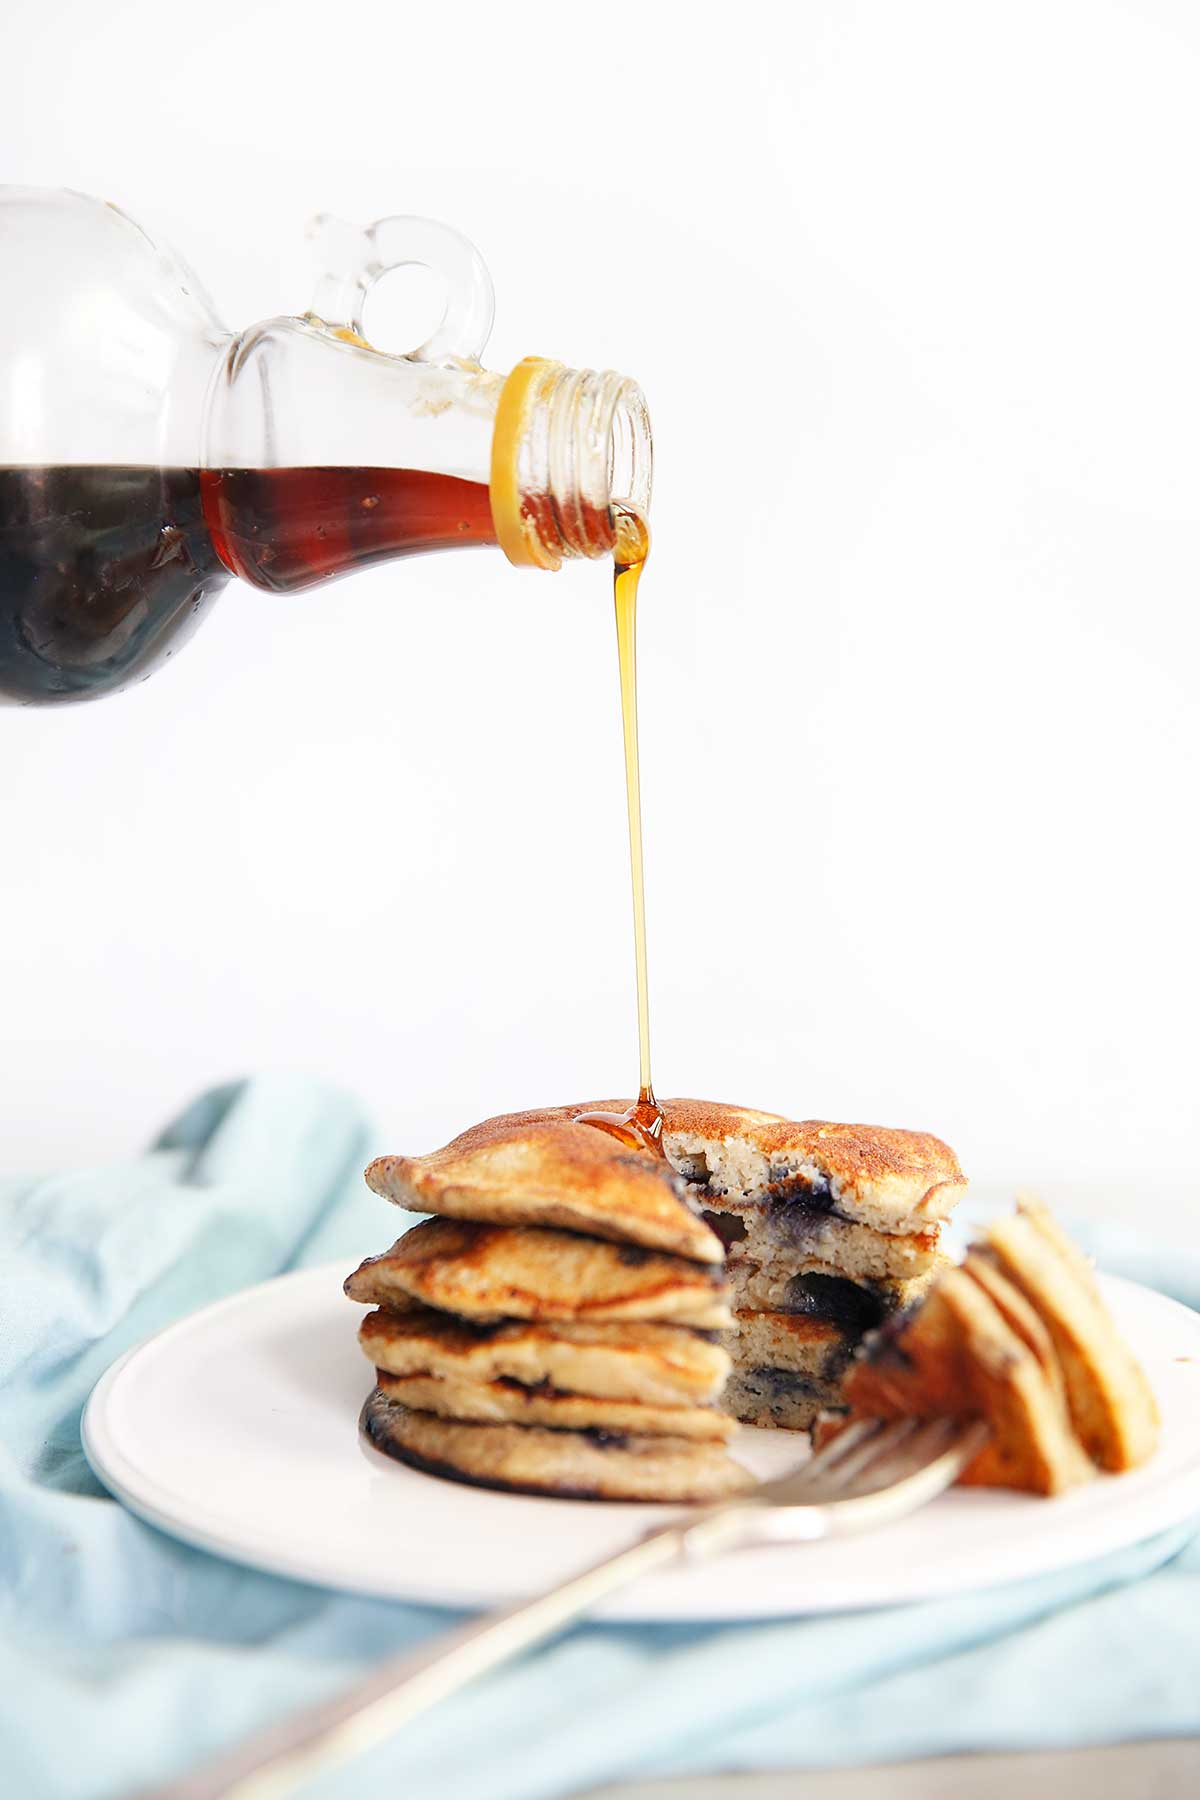 Vegan Breakfast Recipes: Blueberry Protein Pancakes